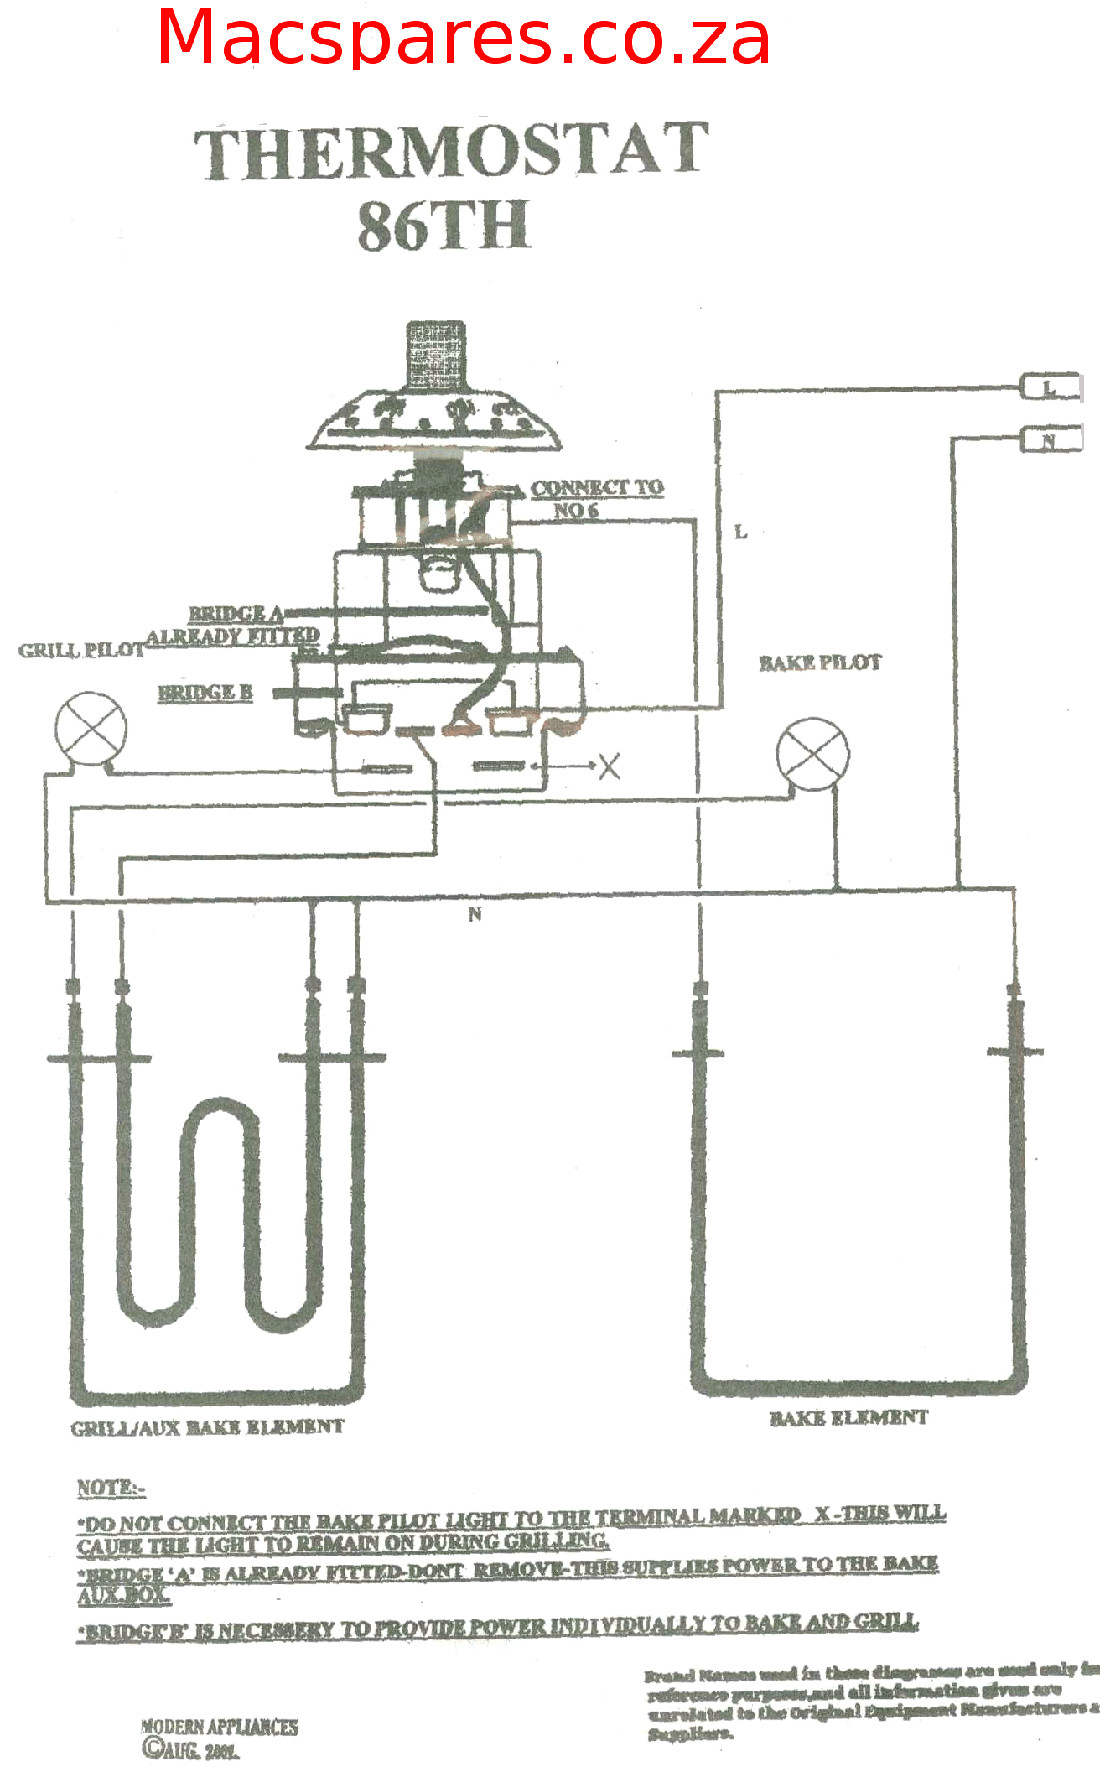 electric oven thermostat wiring diagram Collection-electric oven wiring diagram wiring diagram 6 hastalavista me rh hastalavista me ge electric oven wiring diagram connecting electric cooker diagram 3-s